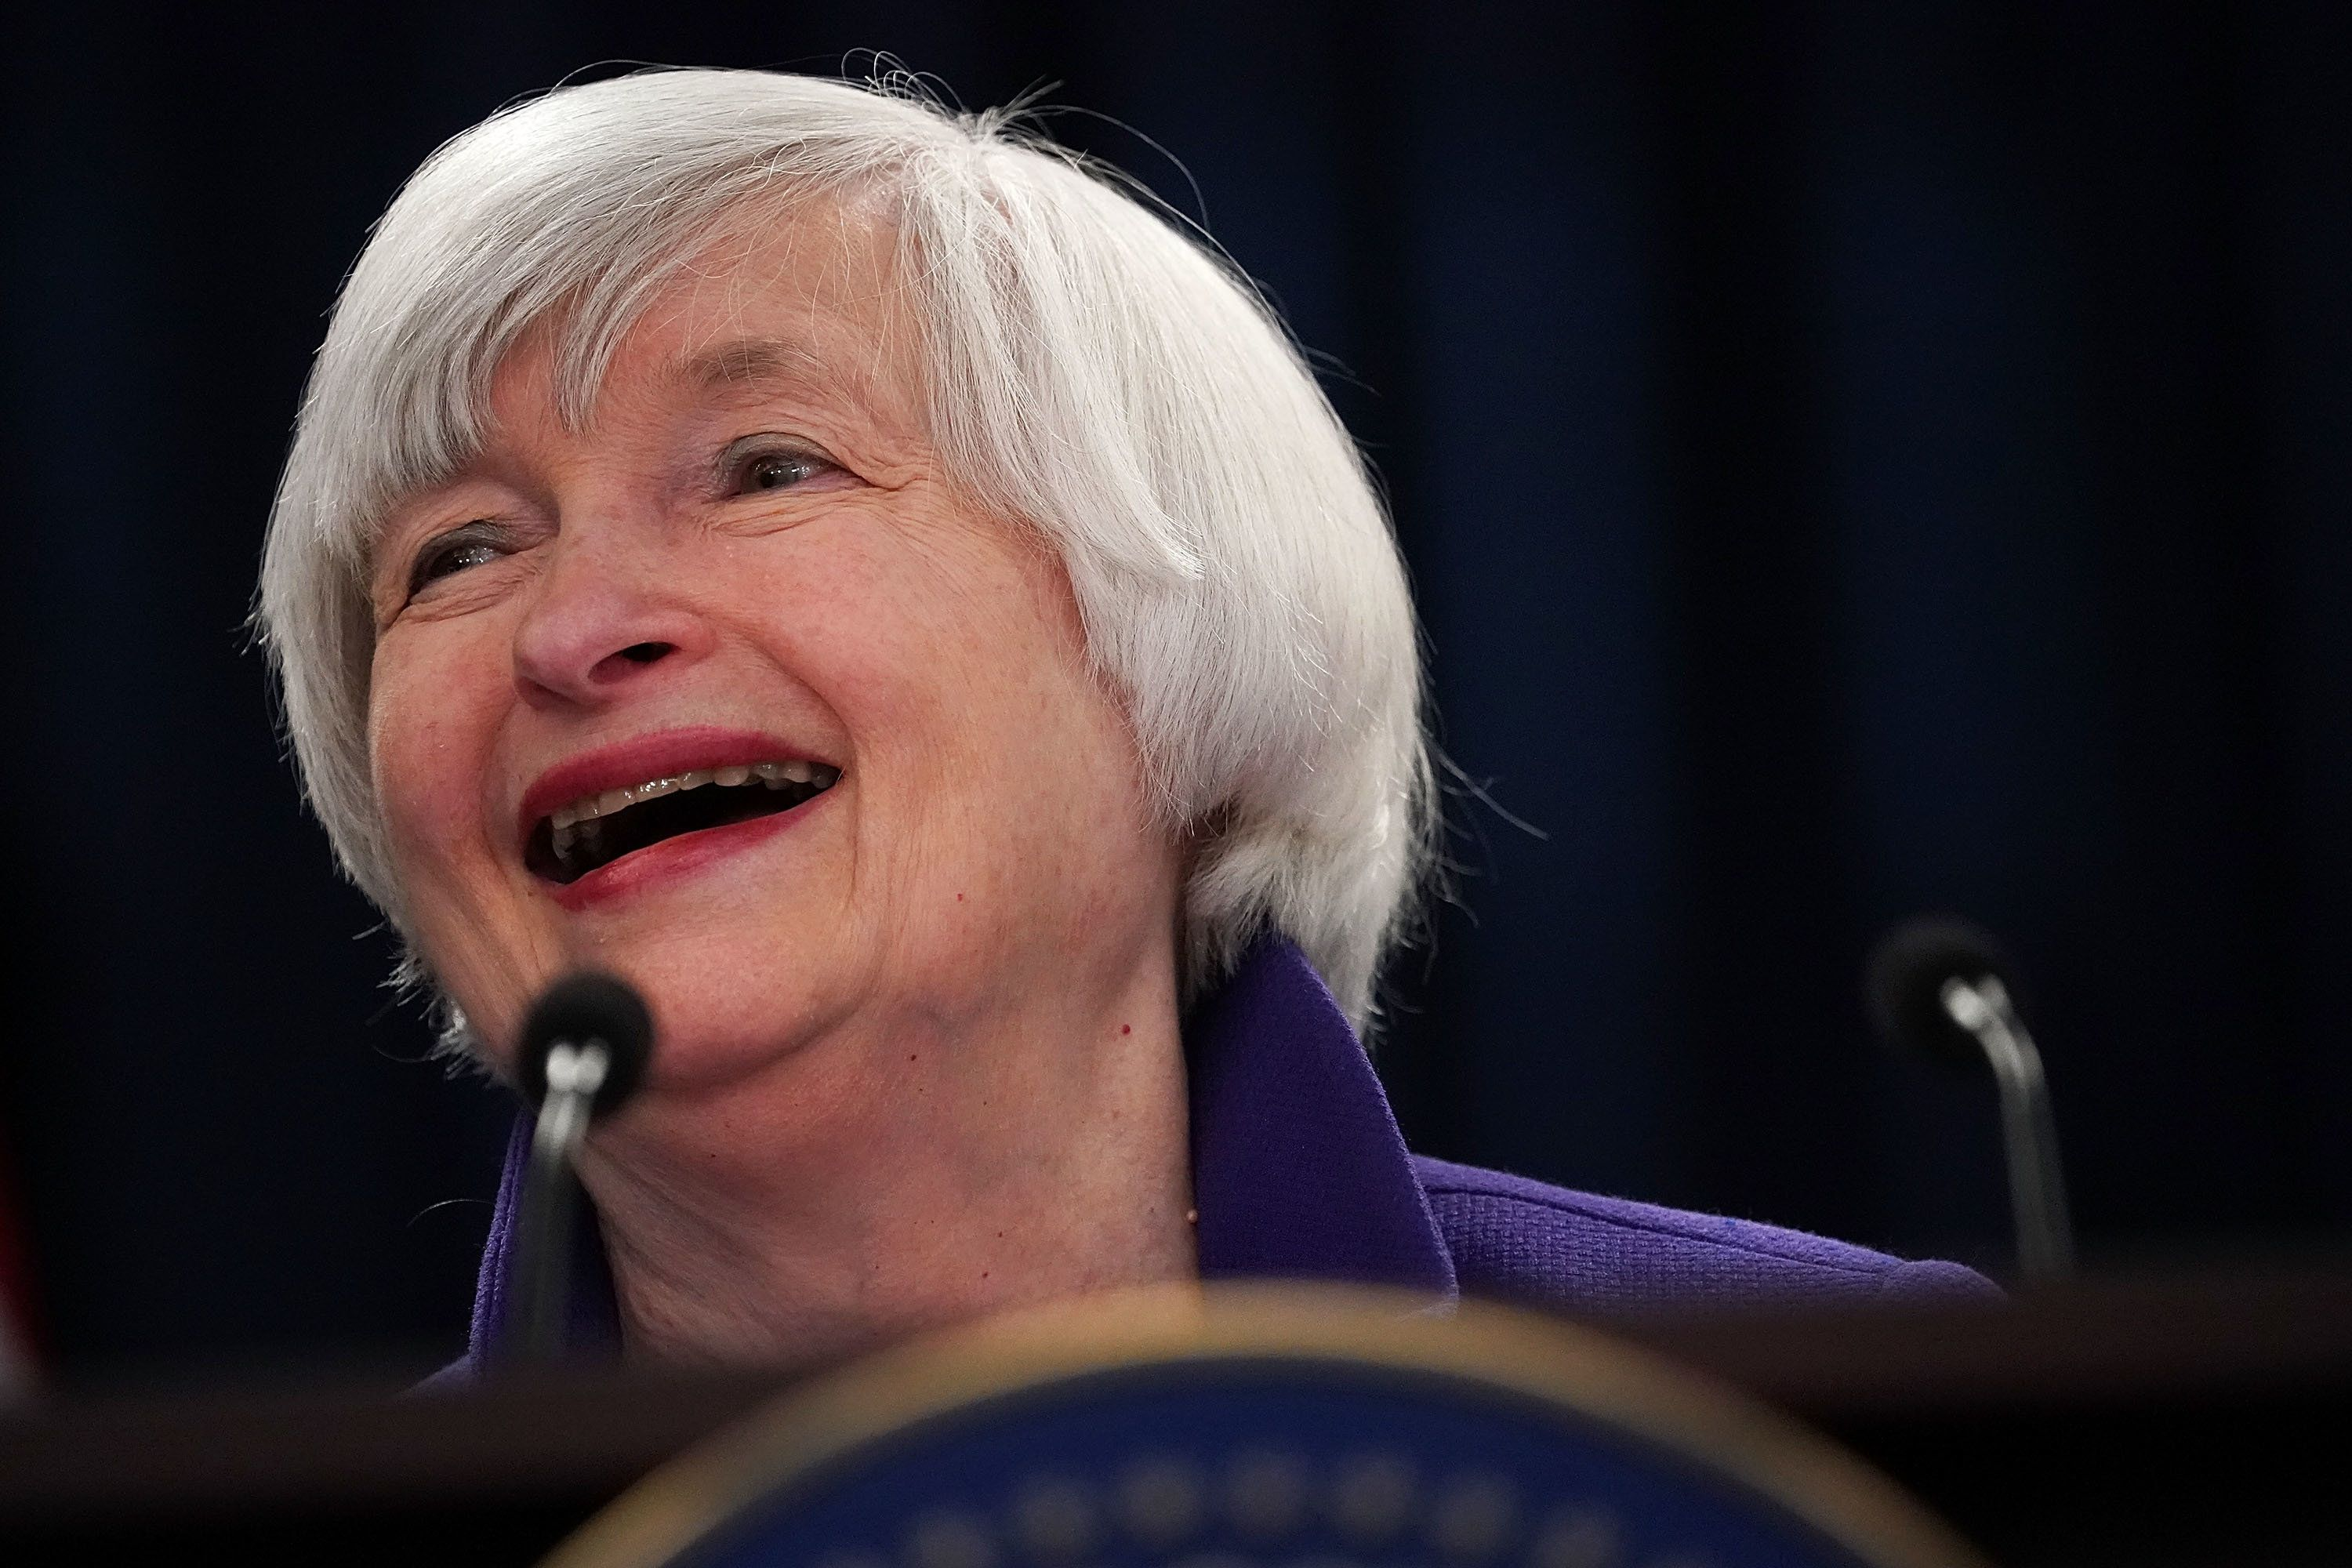 WASHINGTON, DC - DECEMBER 13:  Federal Reserve Chair Janet Yellen laughes during a news conference December 13, 2017 in Washington, DC. Yellen announced that the Federal Reserve is raising the interest rates by a quarter point to 1.5%.  (Photo by Alex Wong/Getty Images)